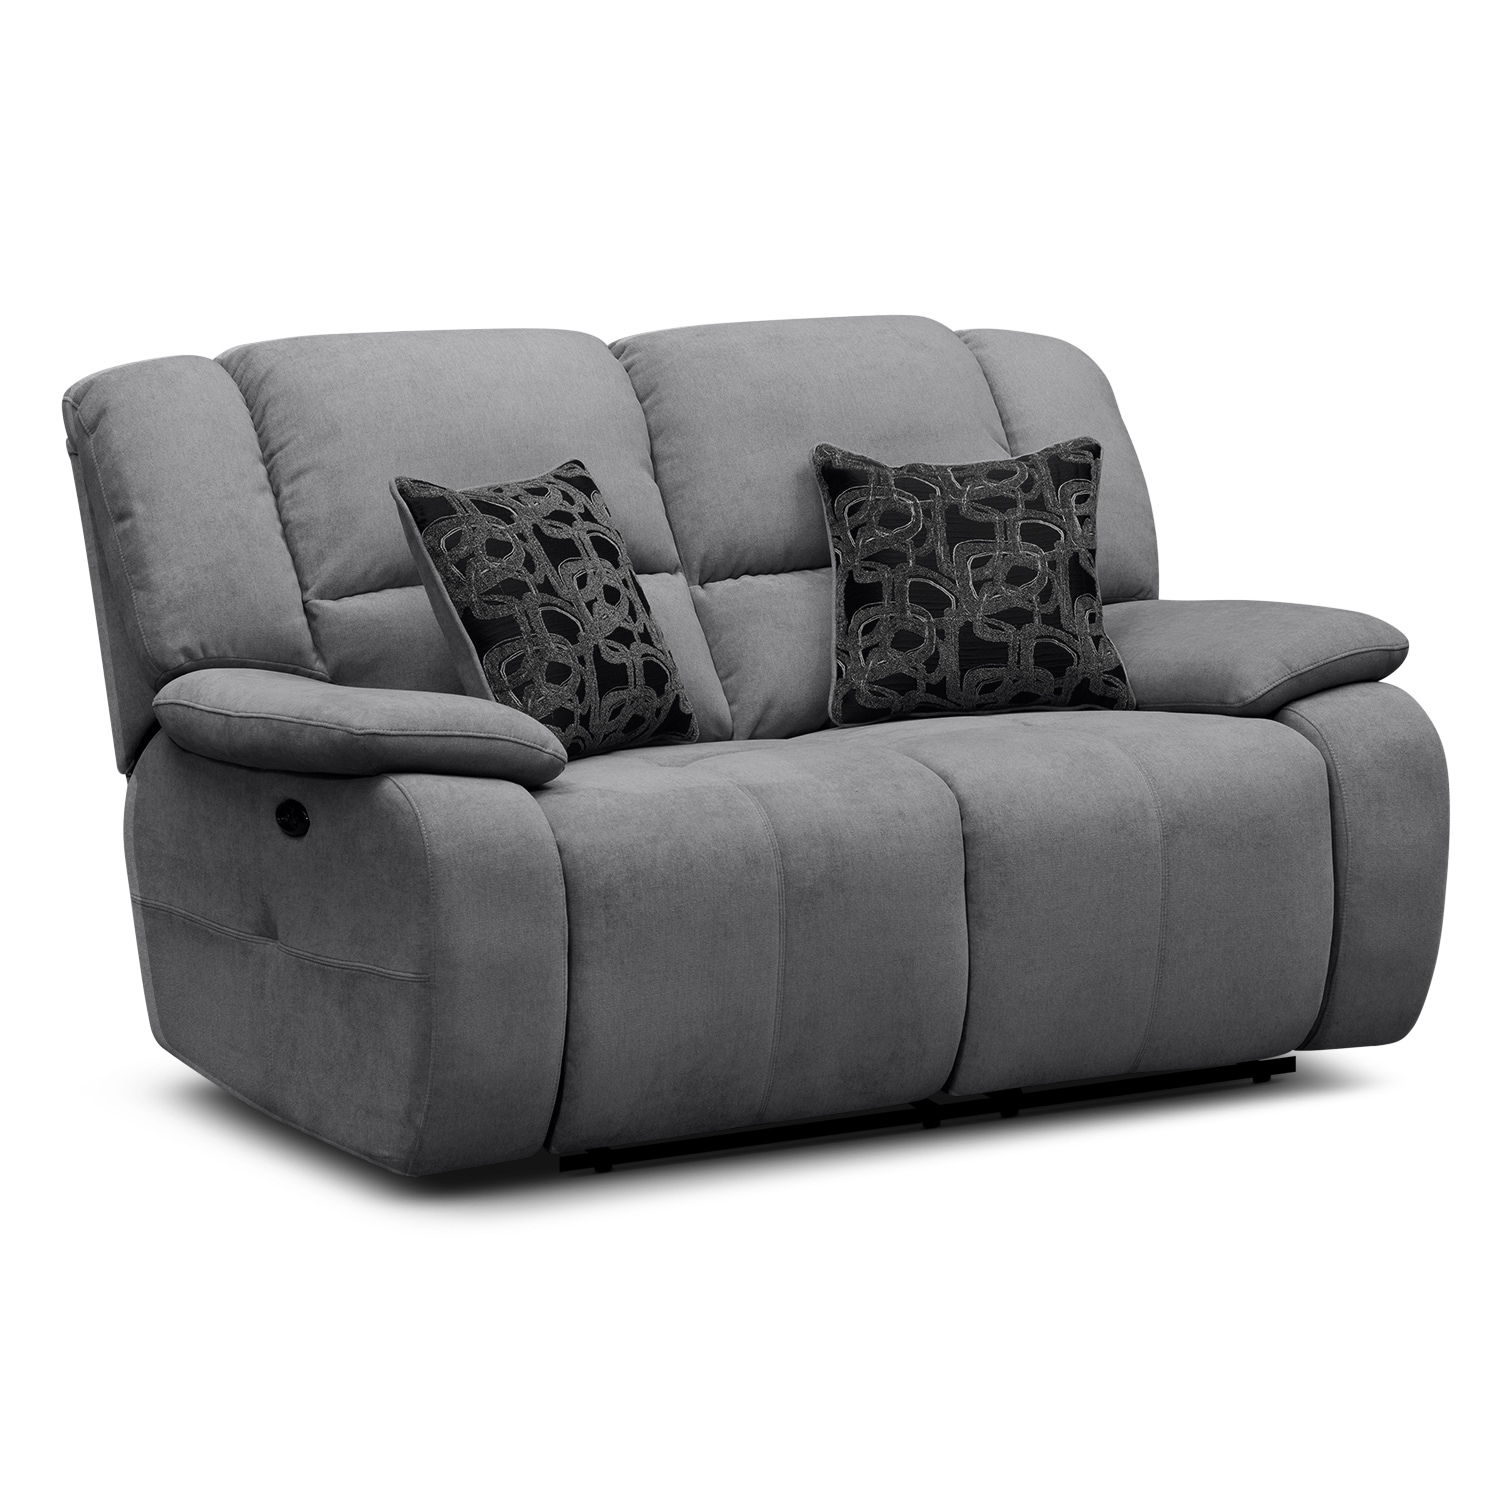 Destin gray upholstery power reclining loveseat value Reclining leather sofa and loveseat